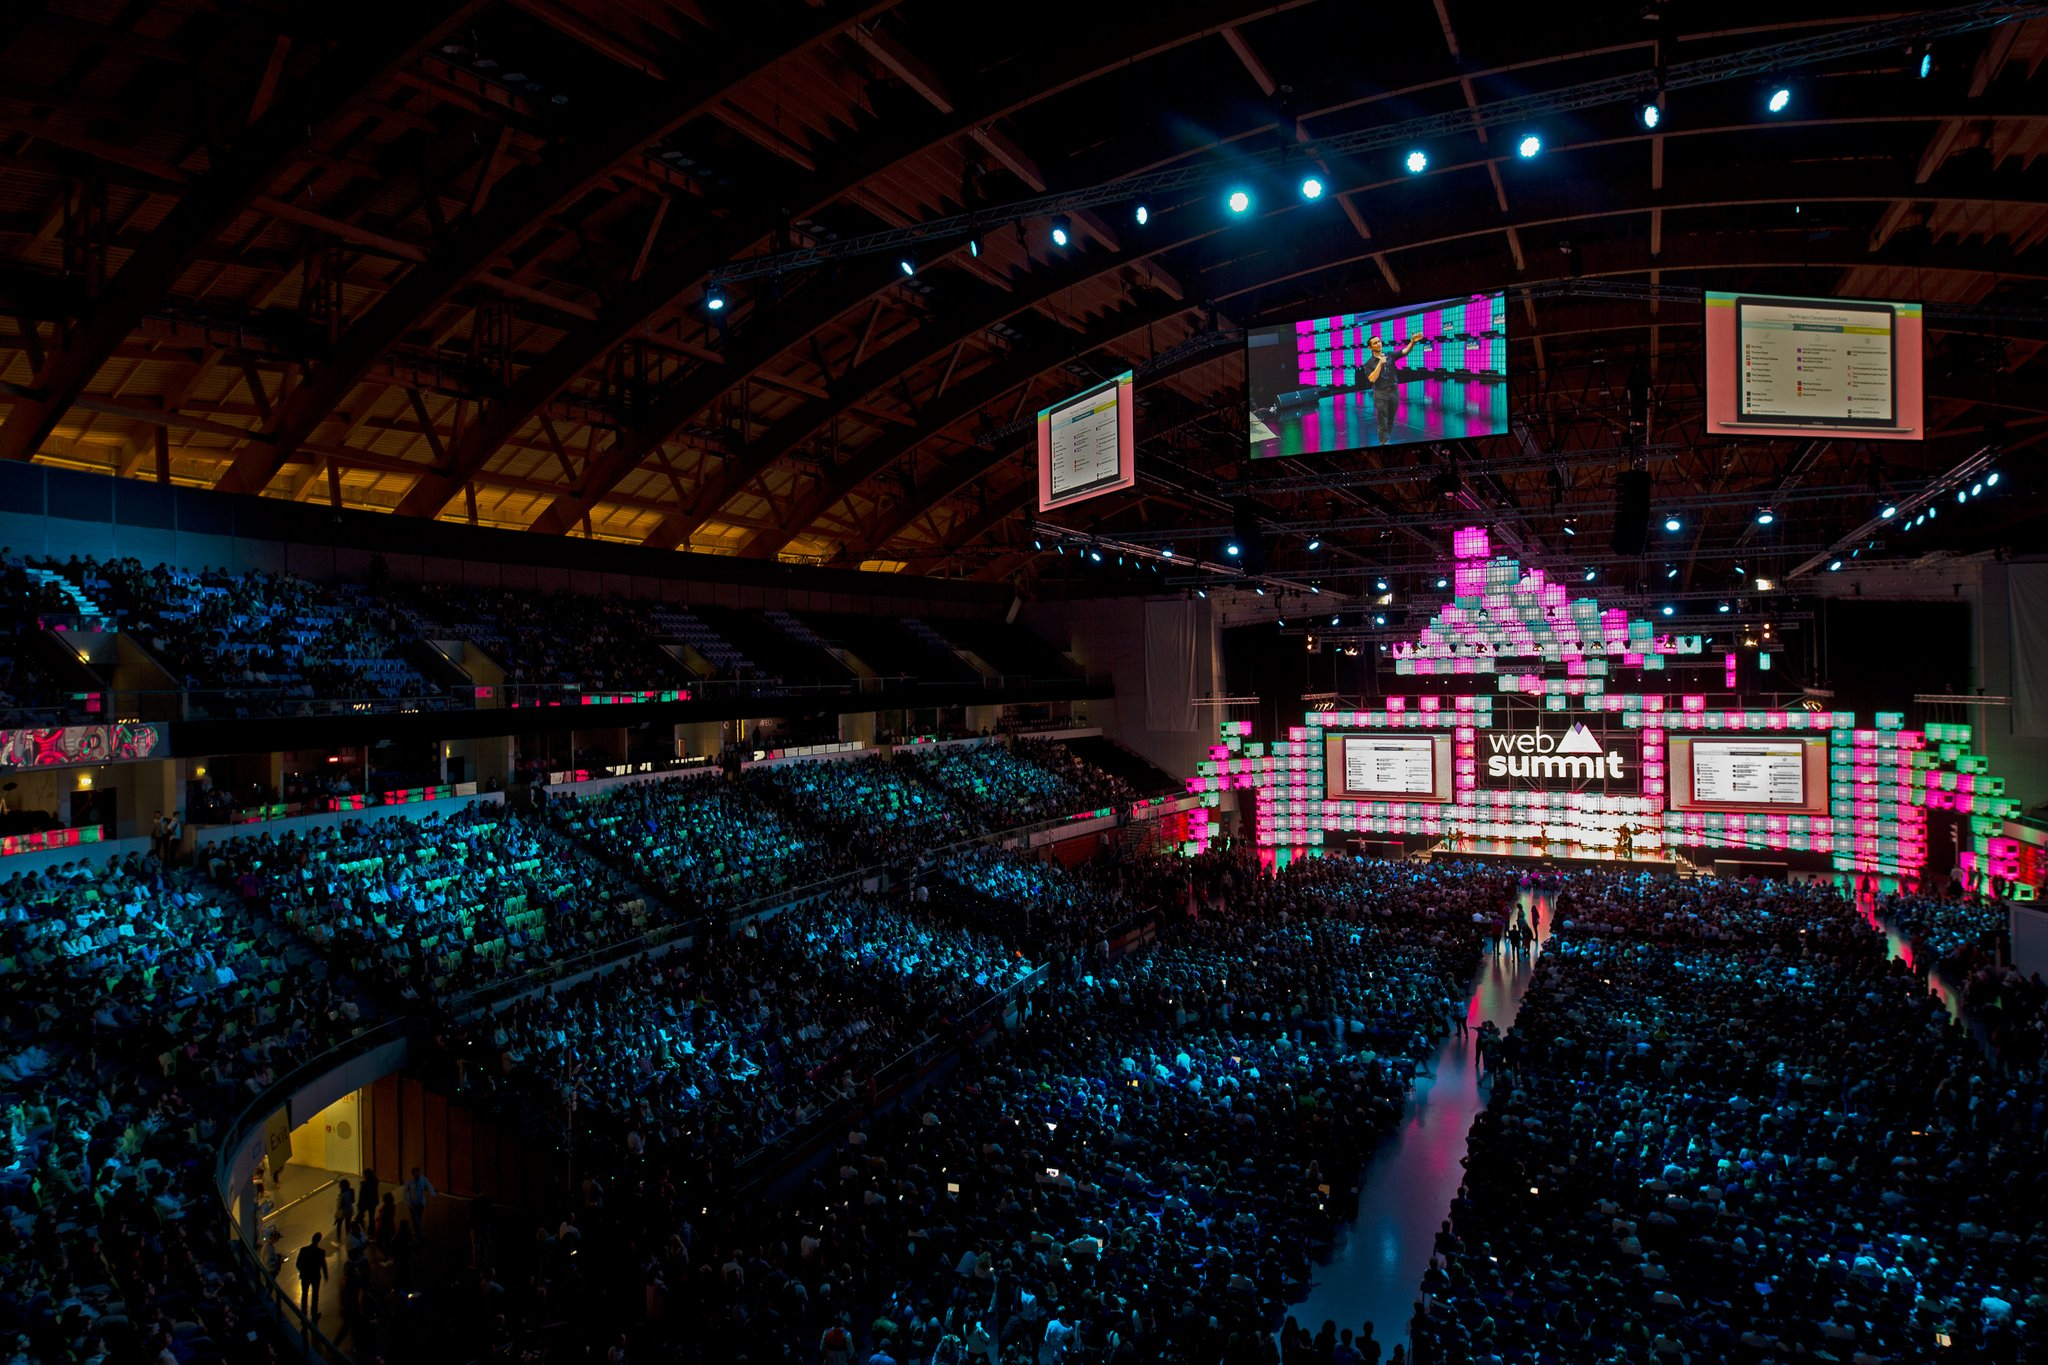 Fotos: @WebSummit